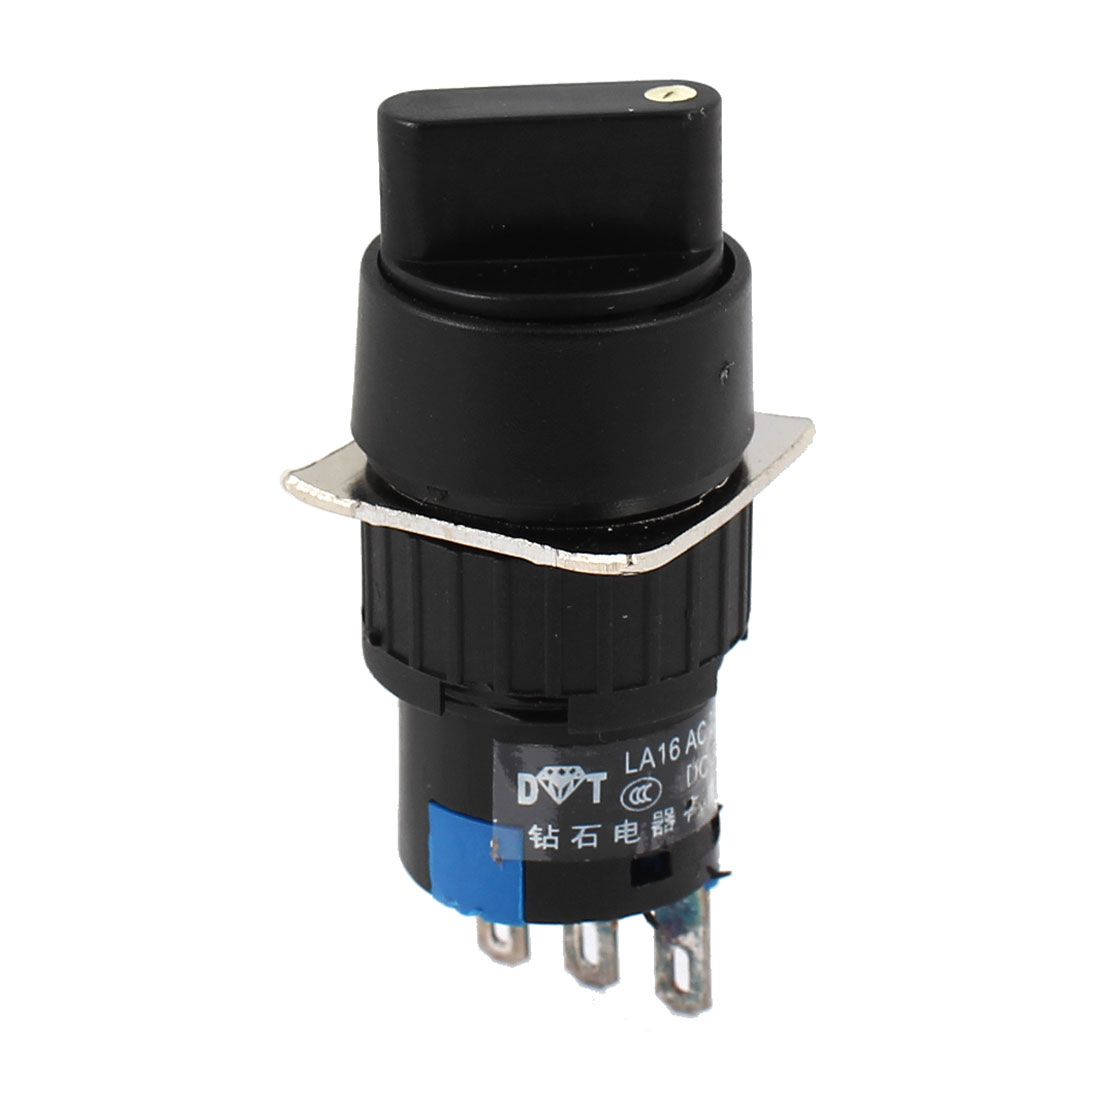 AC250V 3A DC30V 5A Blue Head 3 Terminal SPDT Momentary Rotary Selector Push Button Switch